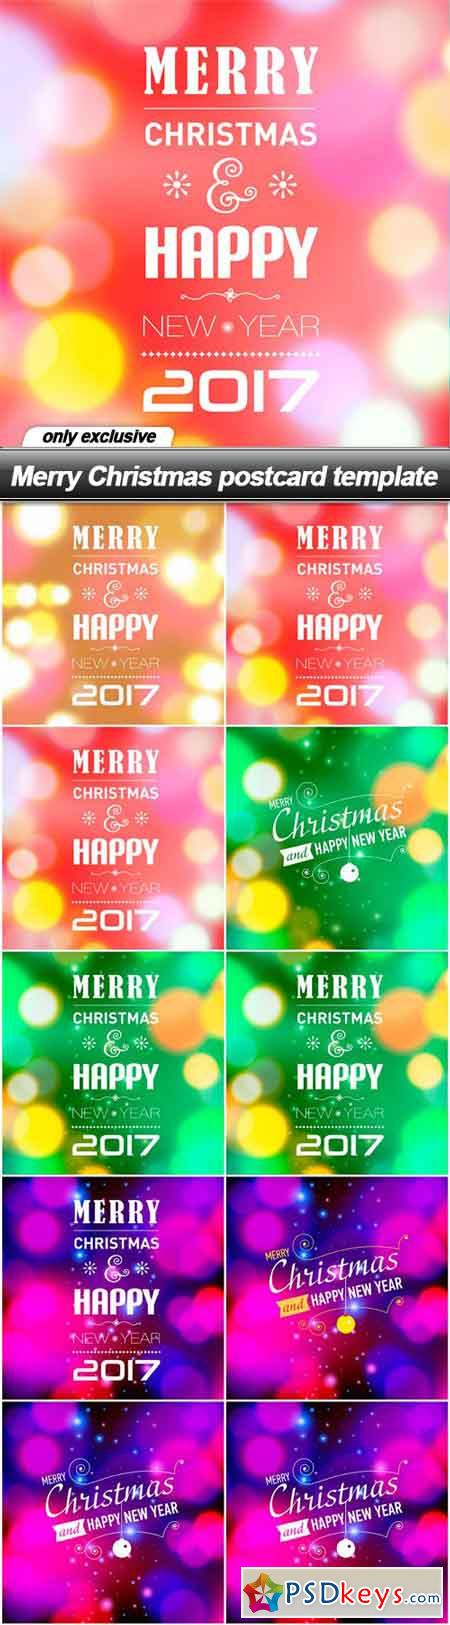 Merry Christmas postcard template - 10 EPS